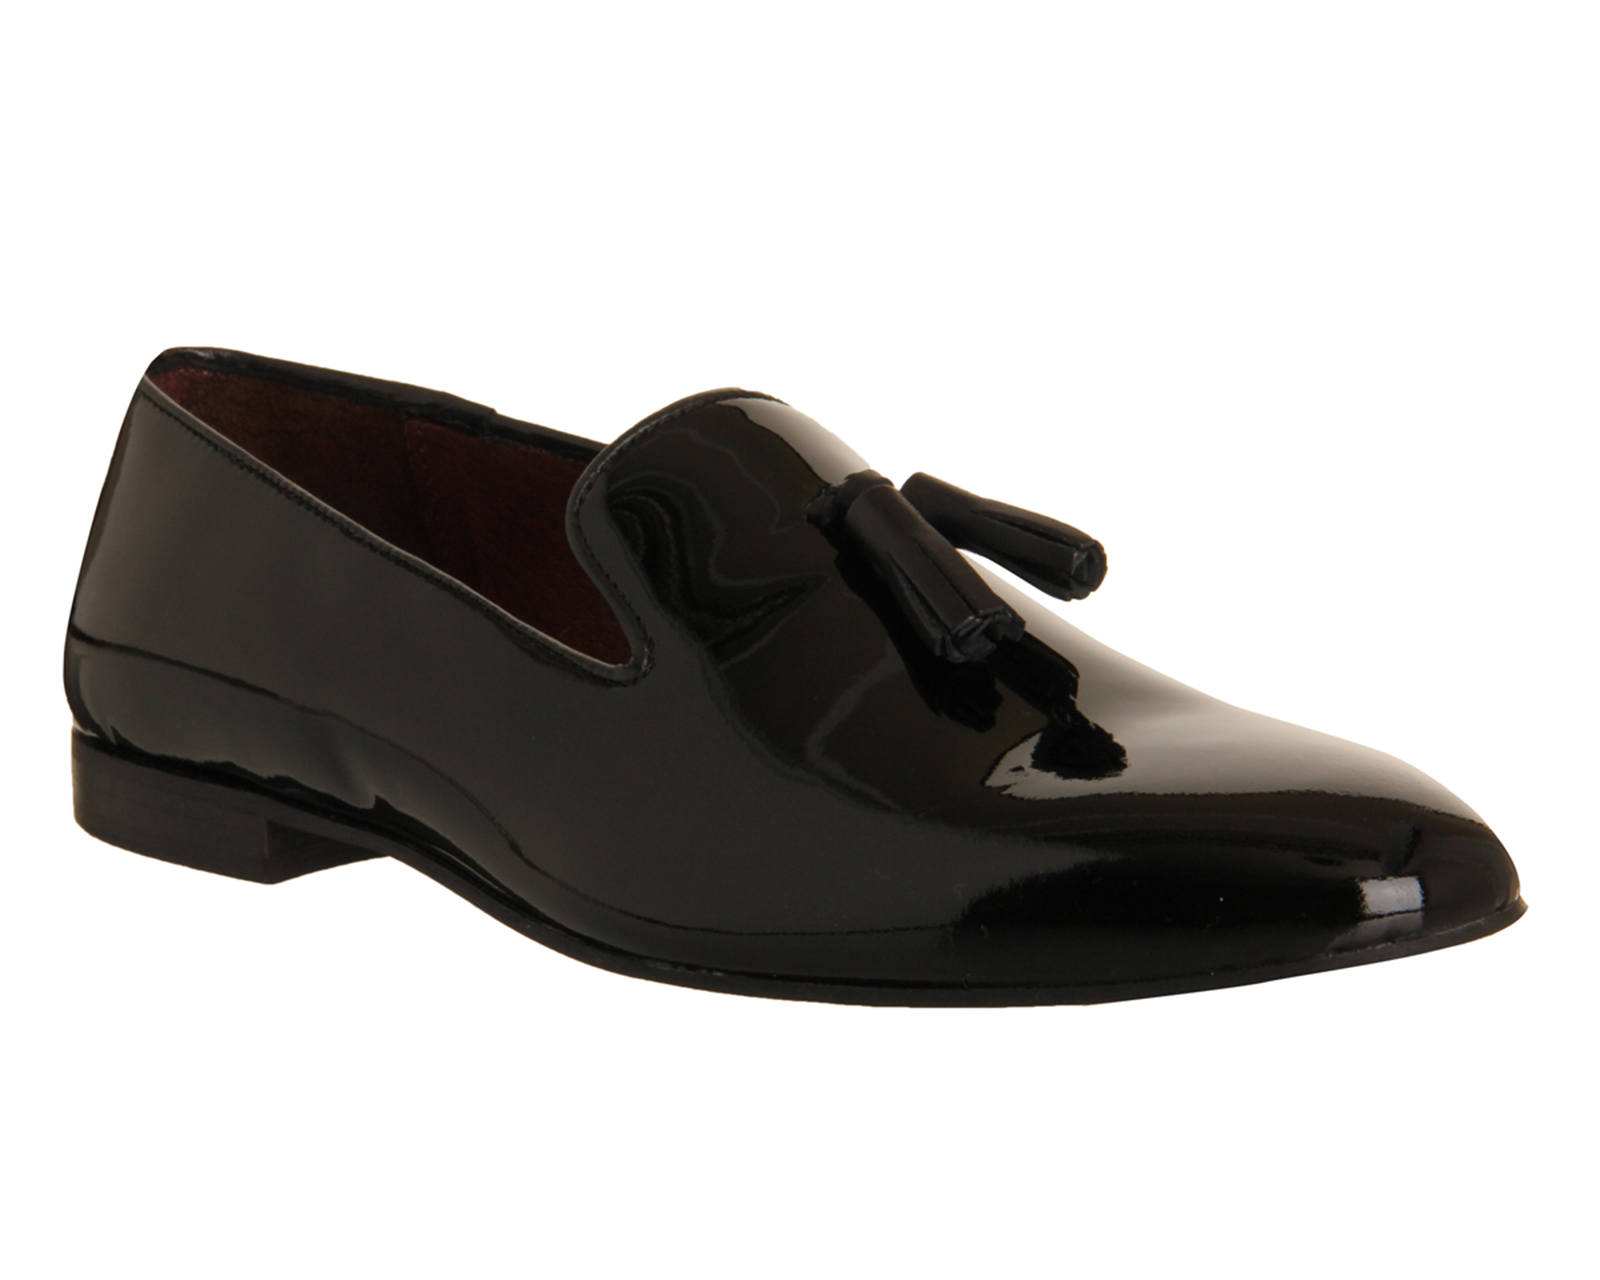 Laurence Dacade Raphael Daisy Patent Leather Loafer Details Laurence Dacade patent leather loafer with daisy appliqué.